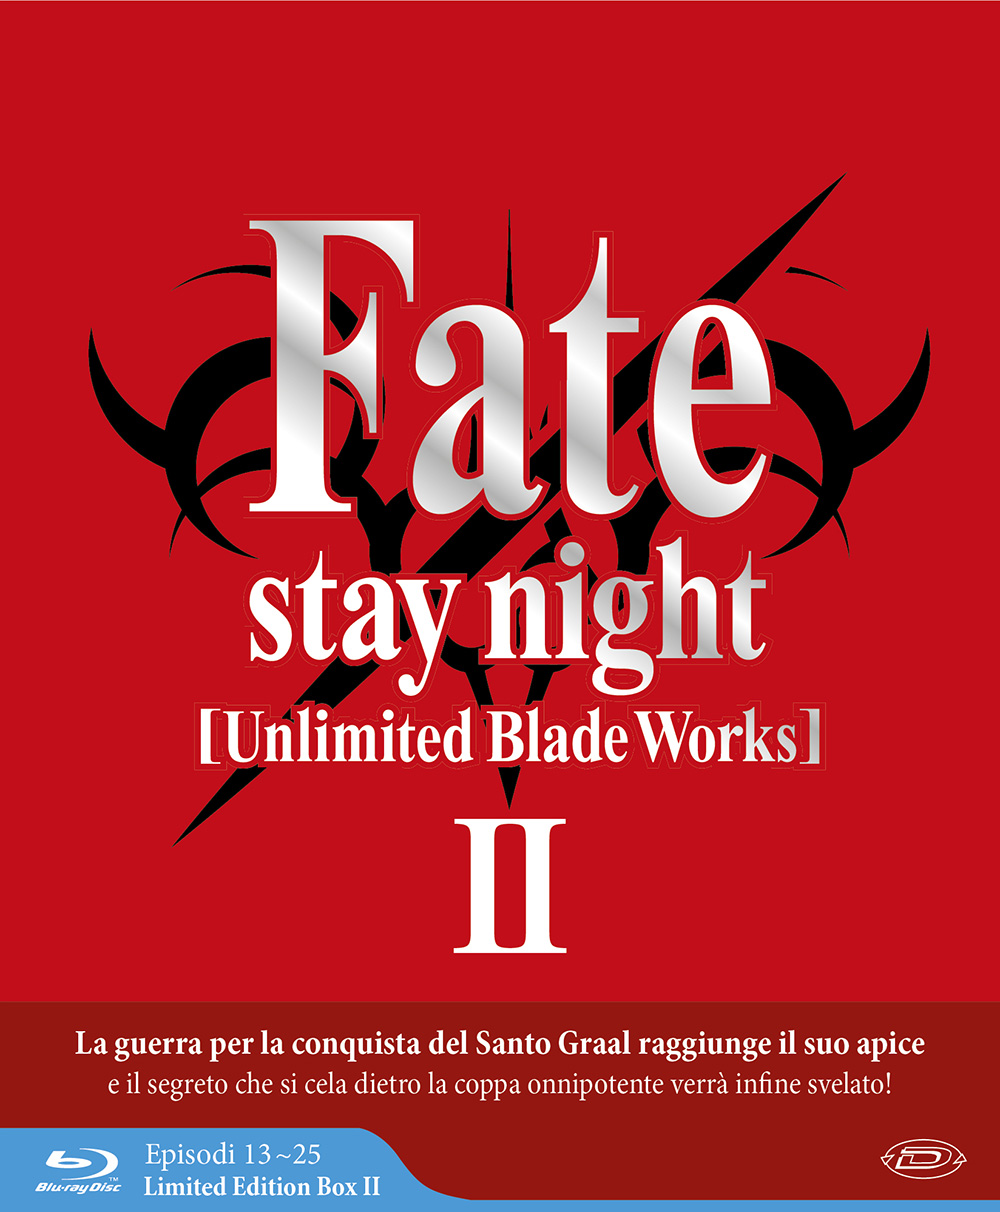 COF.FATE/STAY NIGHT - UNLIMITED BLADE WORKS - STAGIONE 02 (EPS 13-25) (3 BLU-RAY) (LIMITED EDITION BOX)